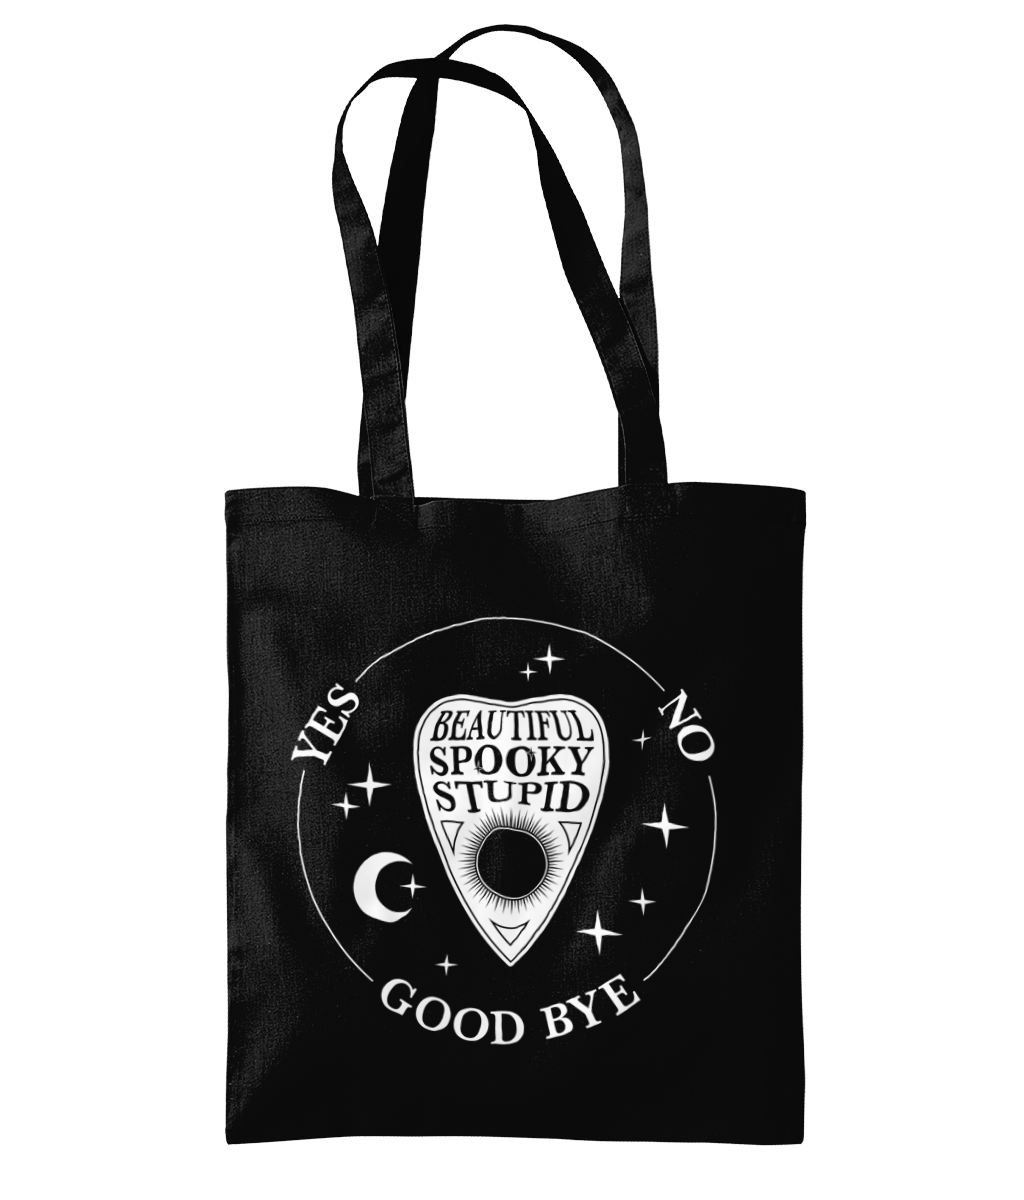 Ouija Tote Bag - SNATCHED